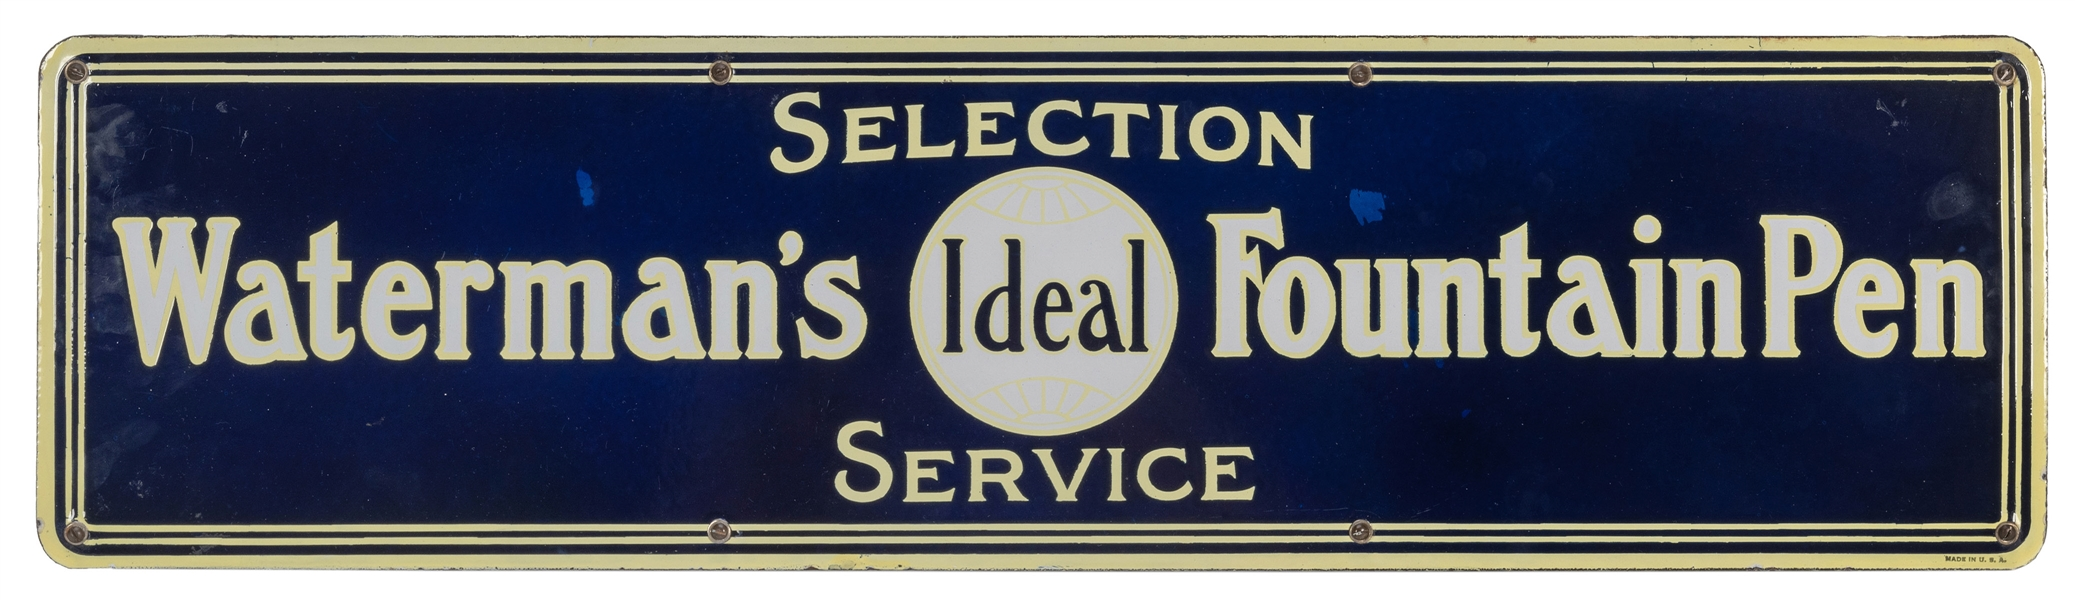 Waterman's Fountain Pen Selection Service Porcelain Sign.